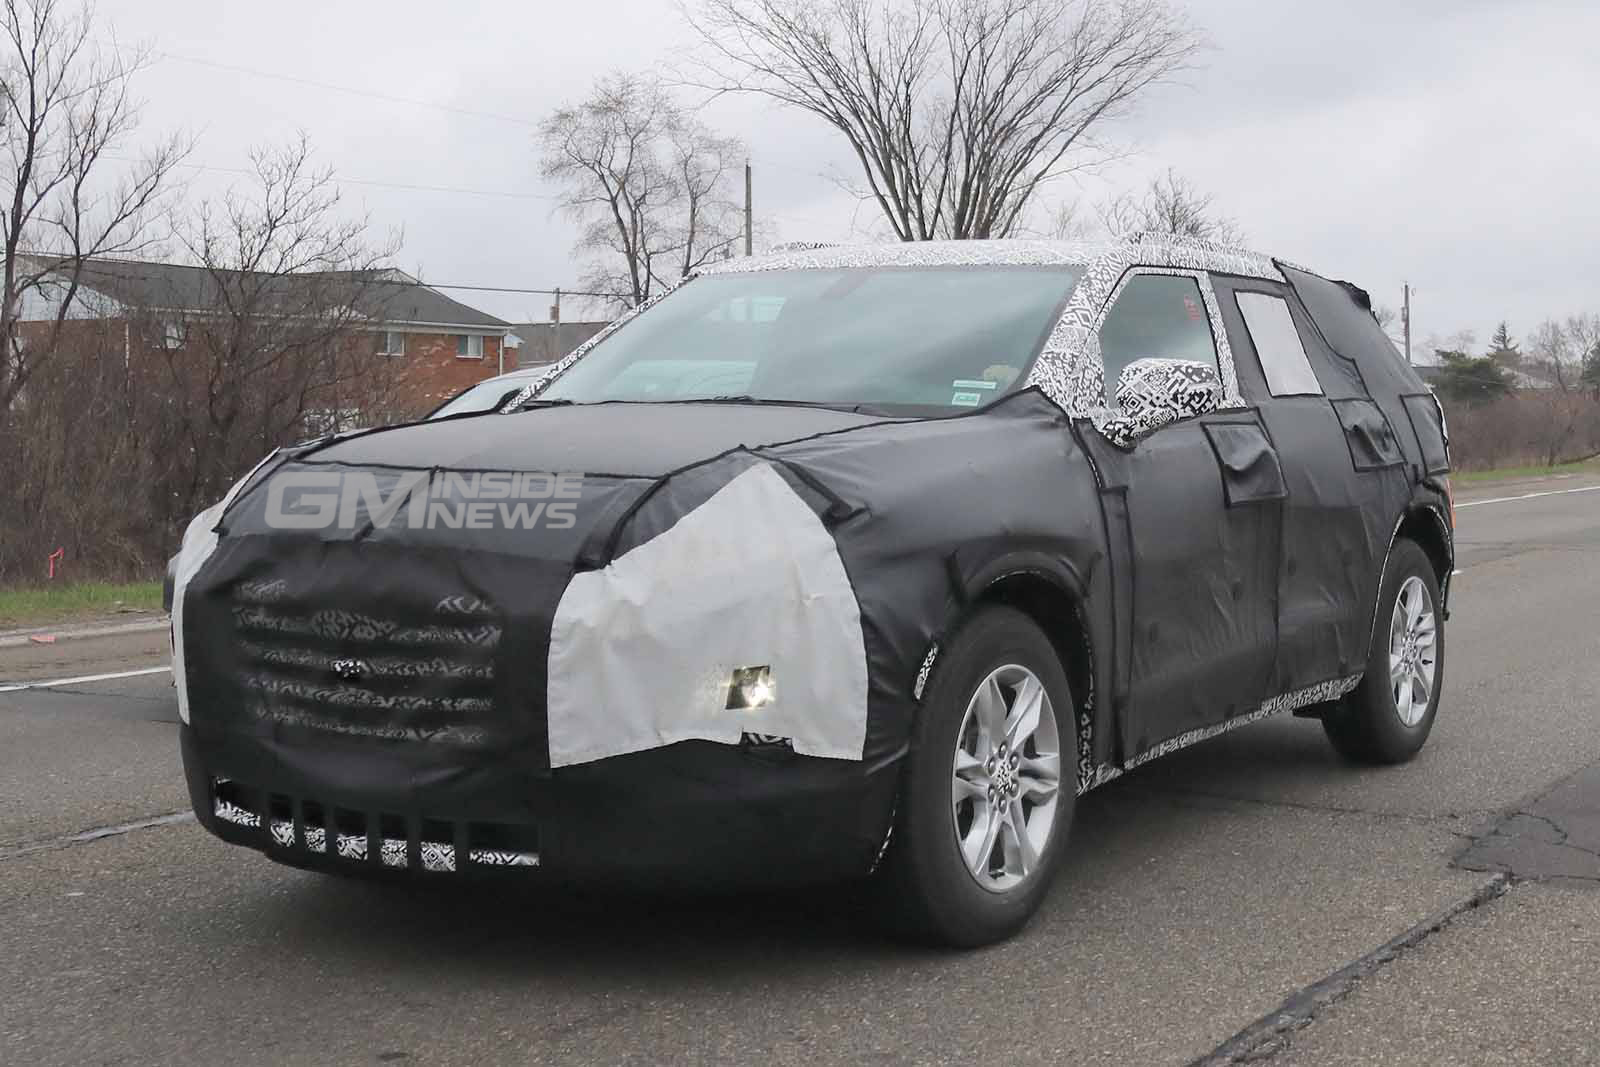 2019 Chevy Blazer Interior Spied - GM Inside News